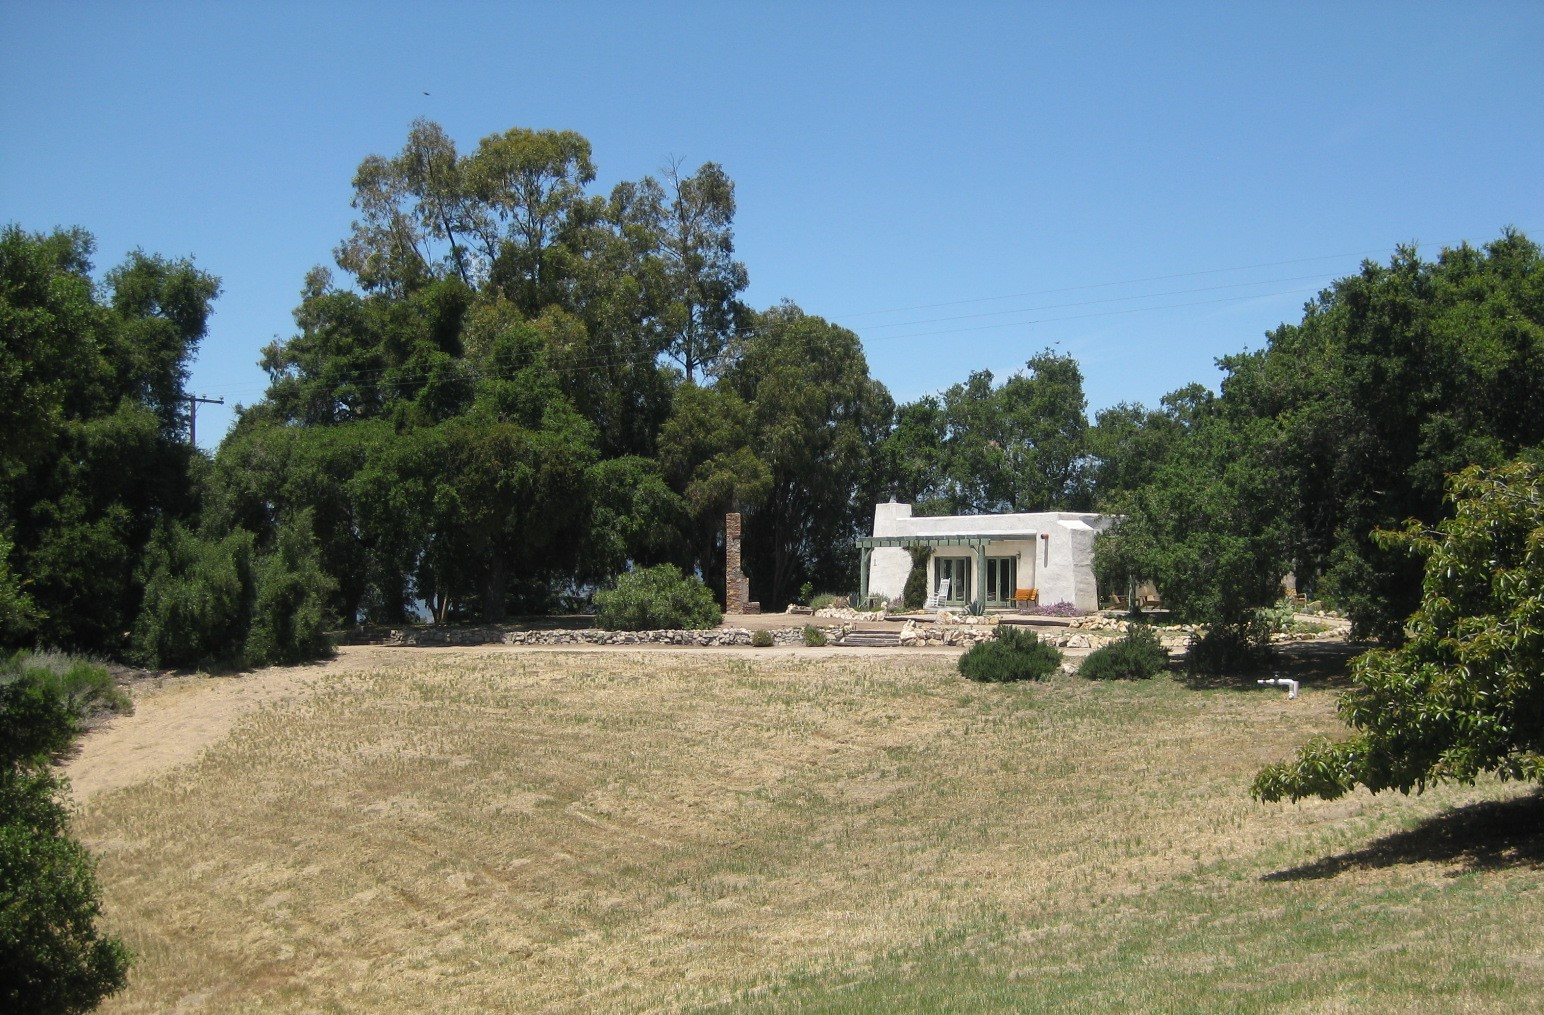 THE VISITOR CENTER and Caretaker Quarters with the eucalyptus stand in the background. (Photo: Leslie Bridger, June 2011)